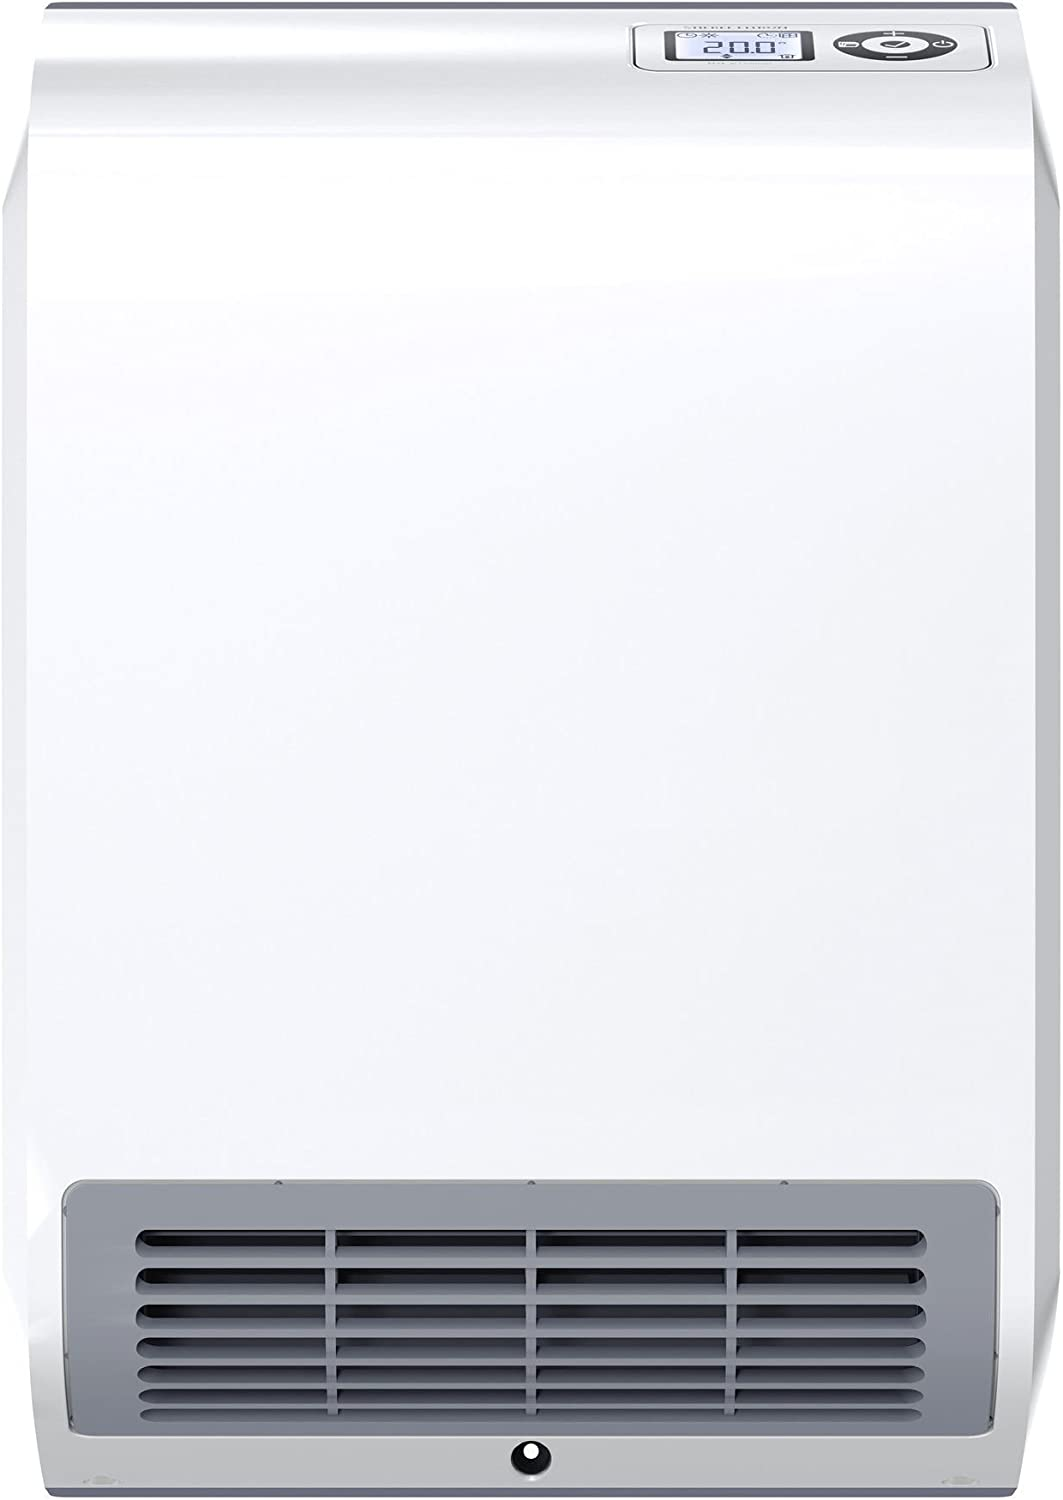 Stiebel Eltron 236653 CK Trend LCD Wall Mounted Rapid Electric Fan Heater for About 20 sqm, Plastic, LED, 7-Day Timer, Frost+overheating Protection, Open Window Detection, 2000 W, White